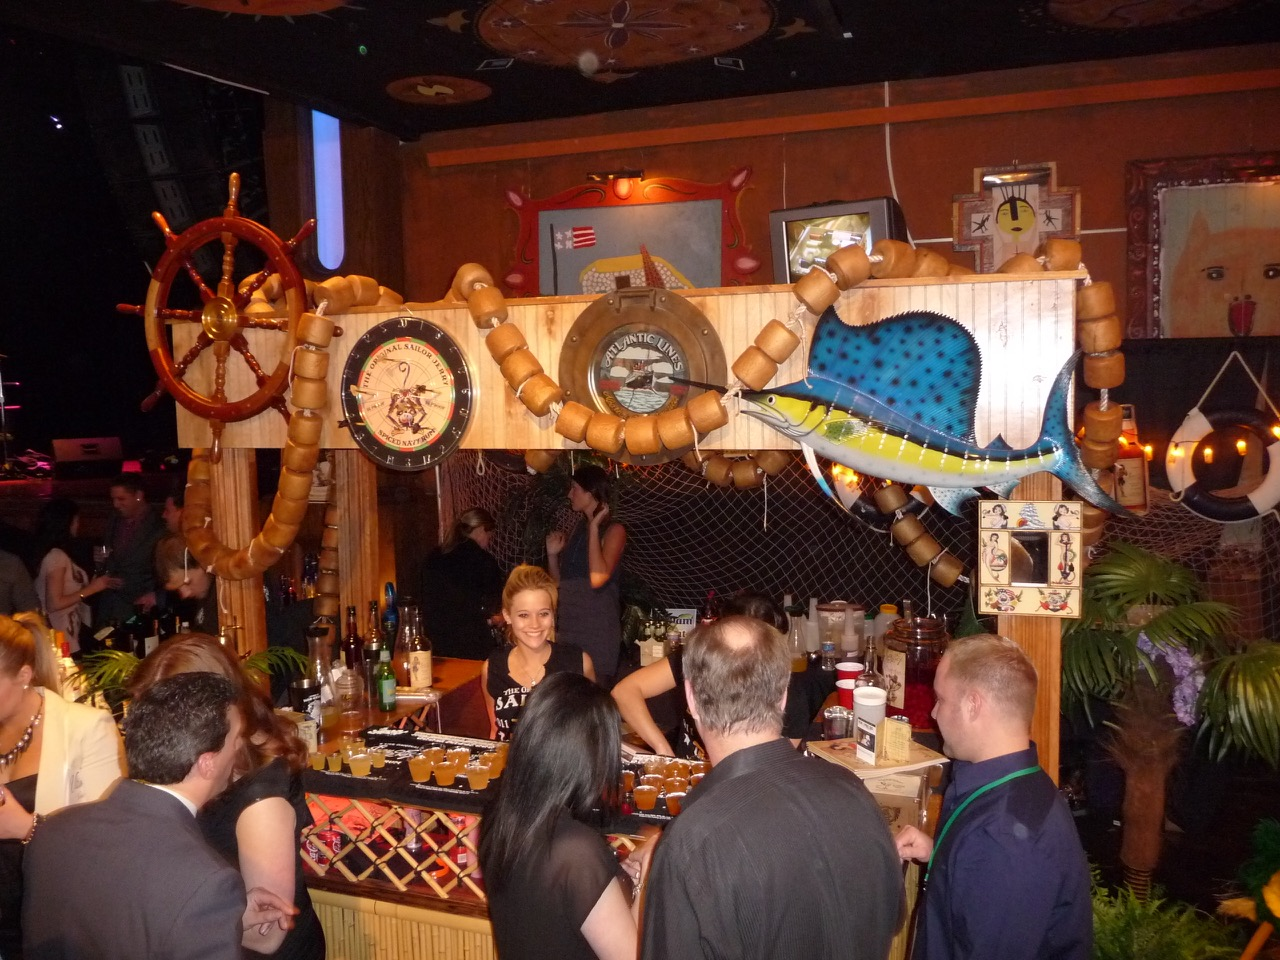 Custom+Theme+Bar+Rental+for+Events+-+Bar+Rental+NJ+NYC+-+Eggsotic+Events+Event+Design++-+3.jpg